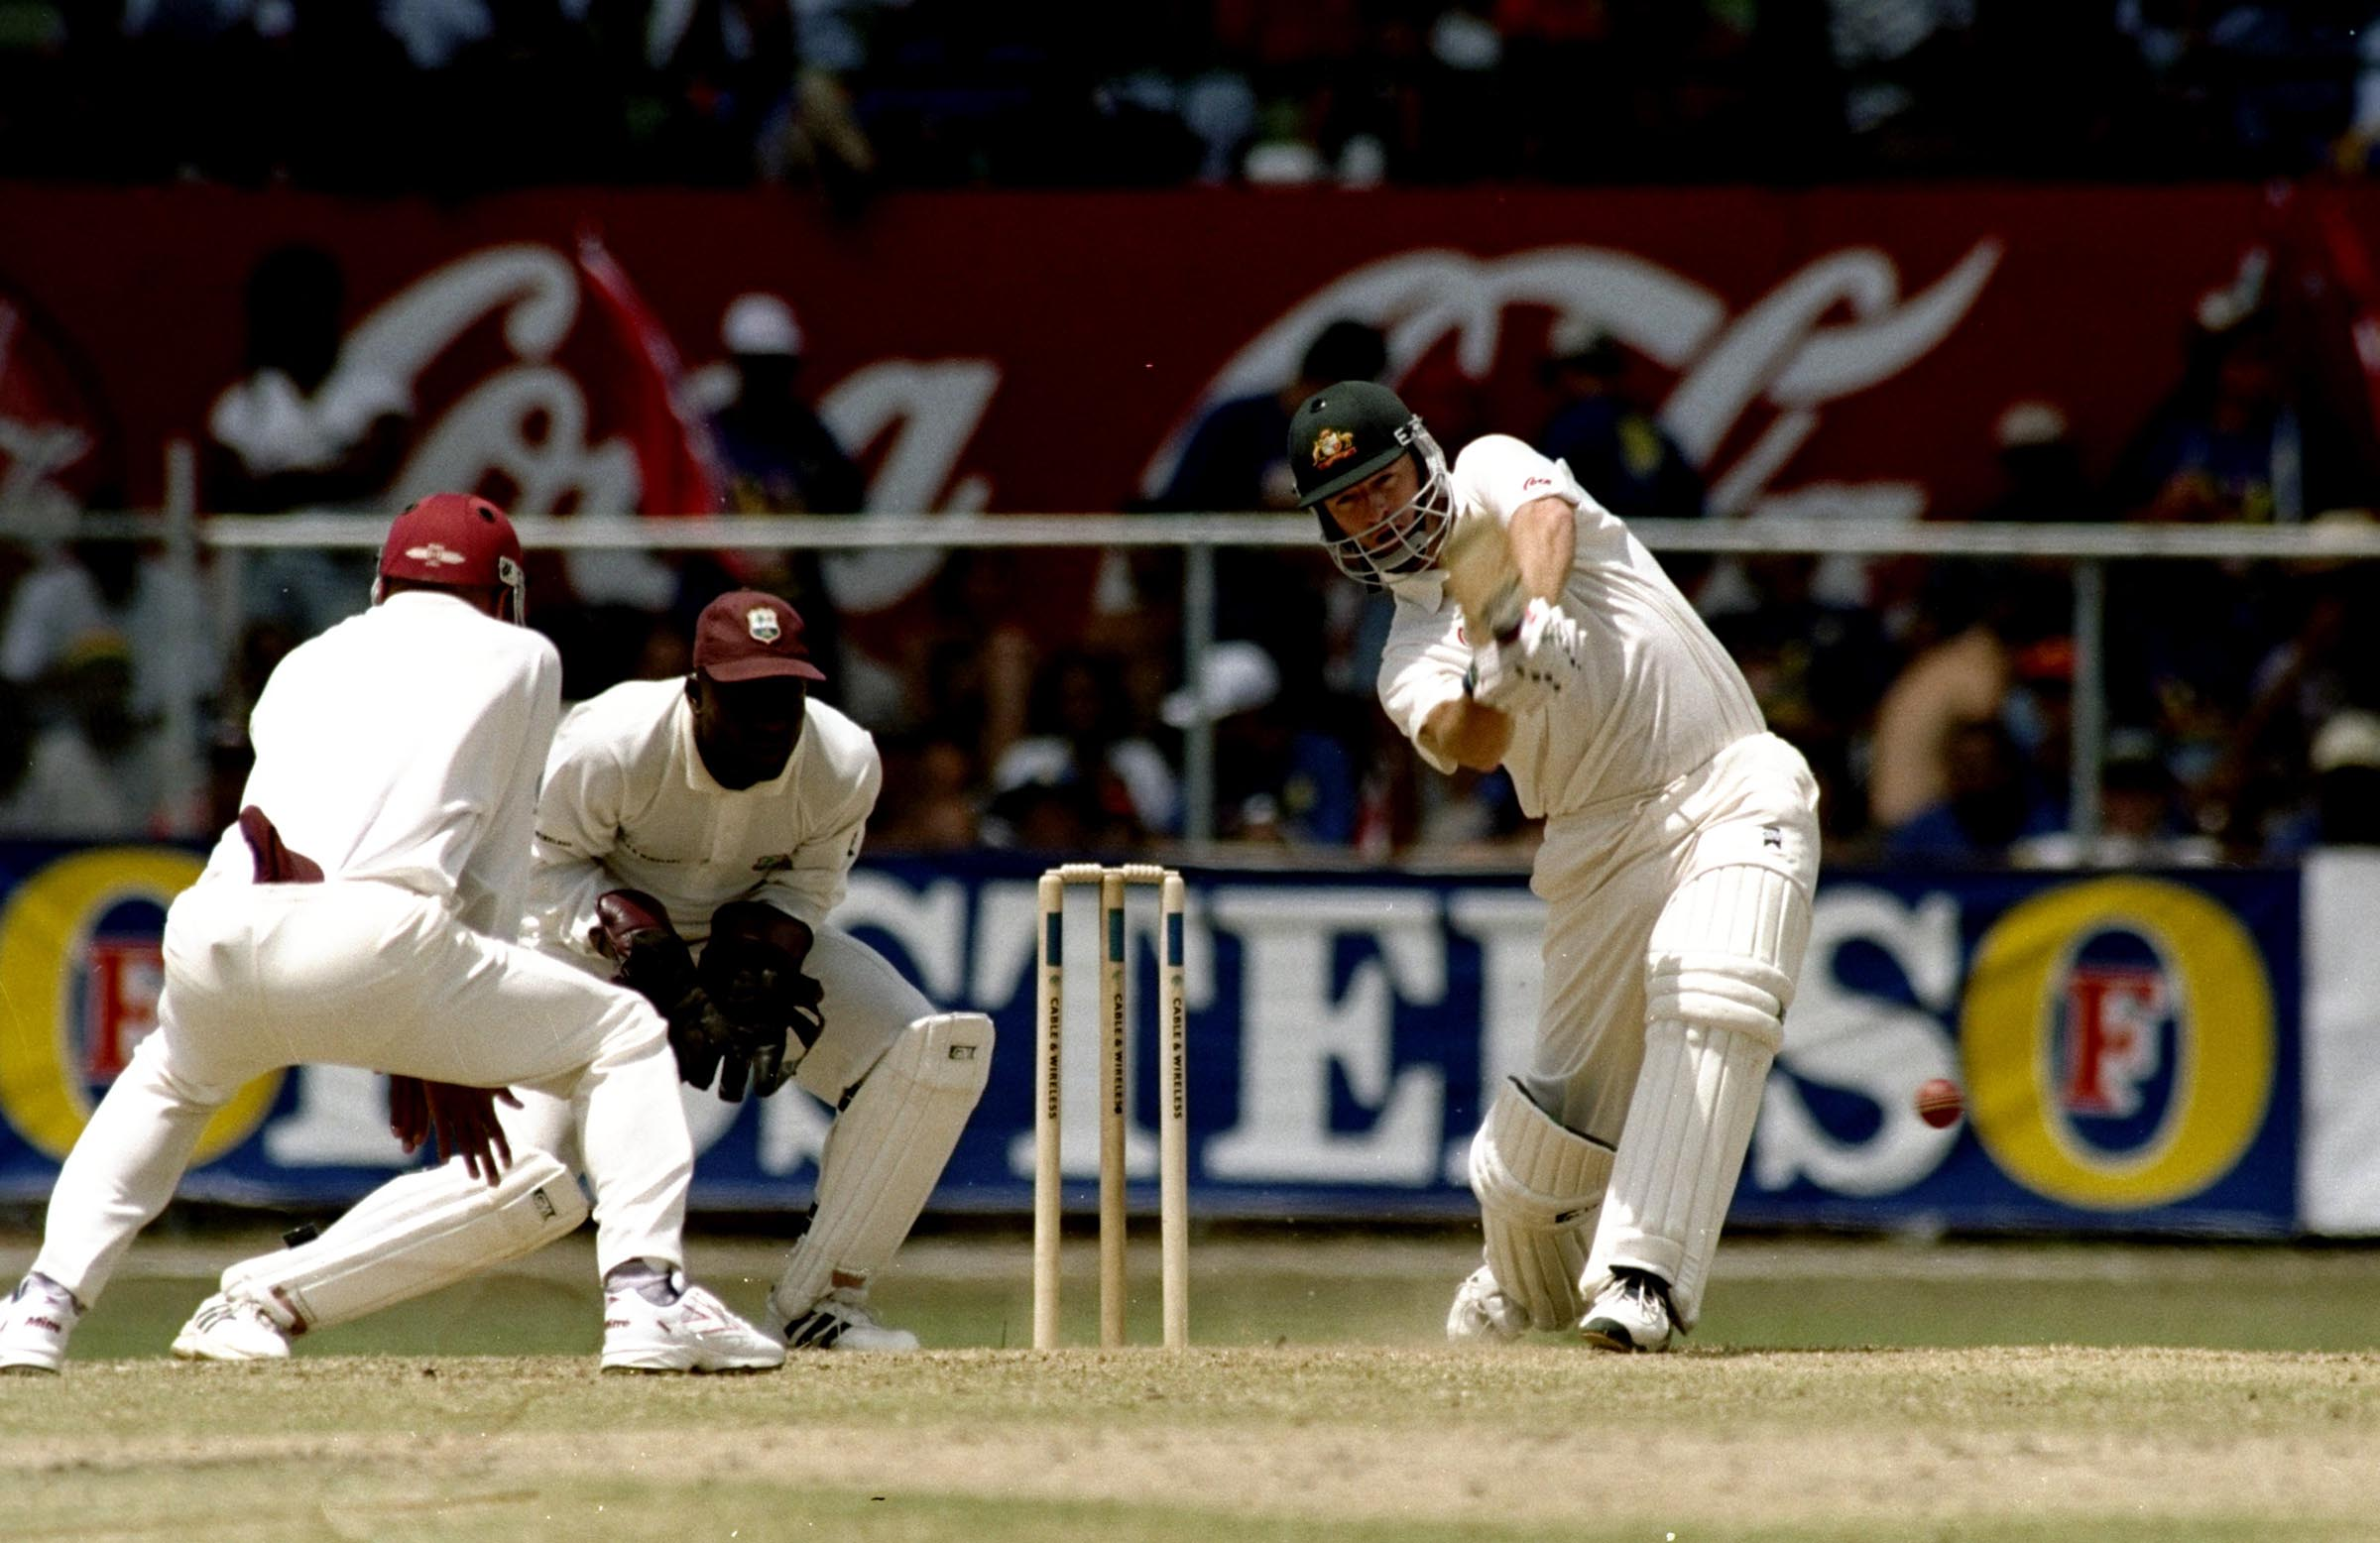 Waugh continued his outstanding series with a brilliant 199 // Getty